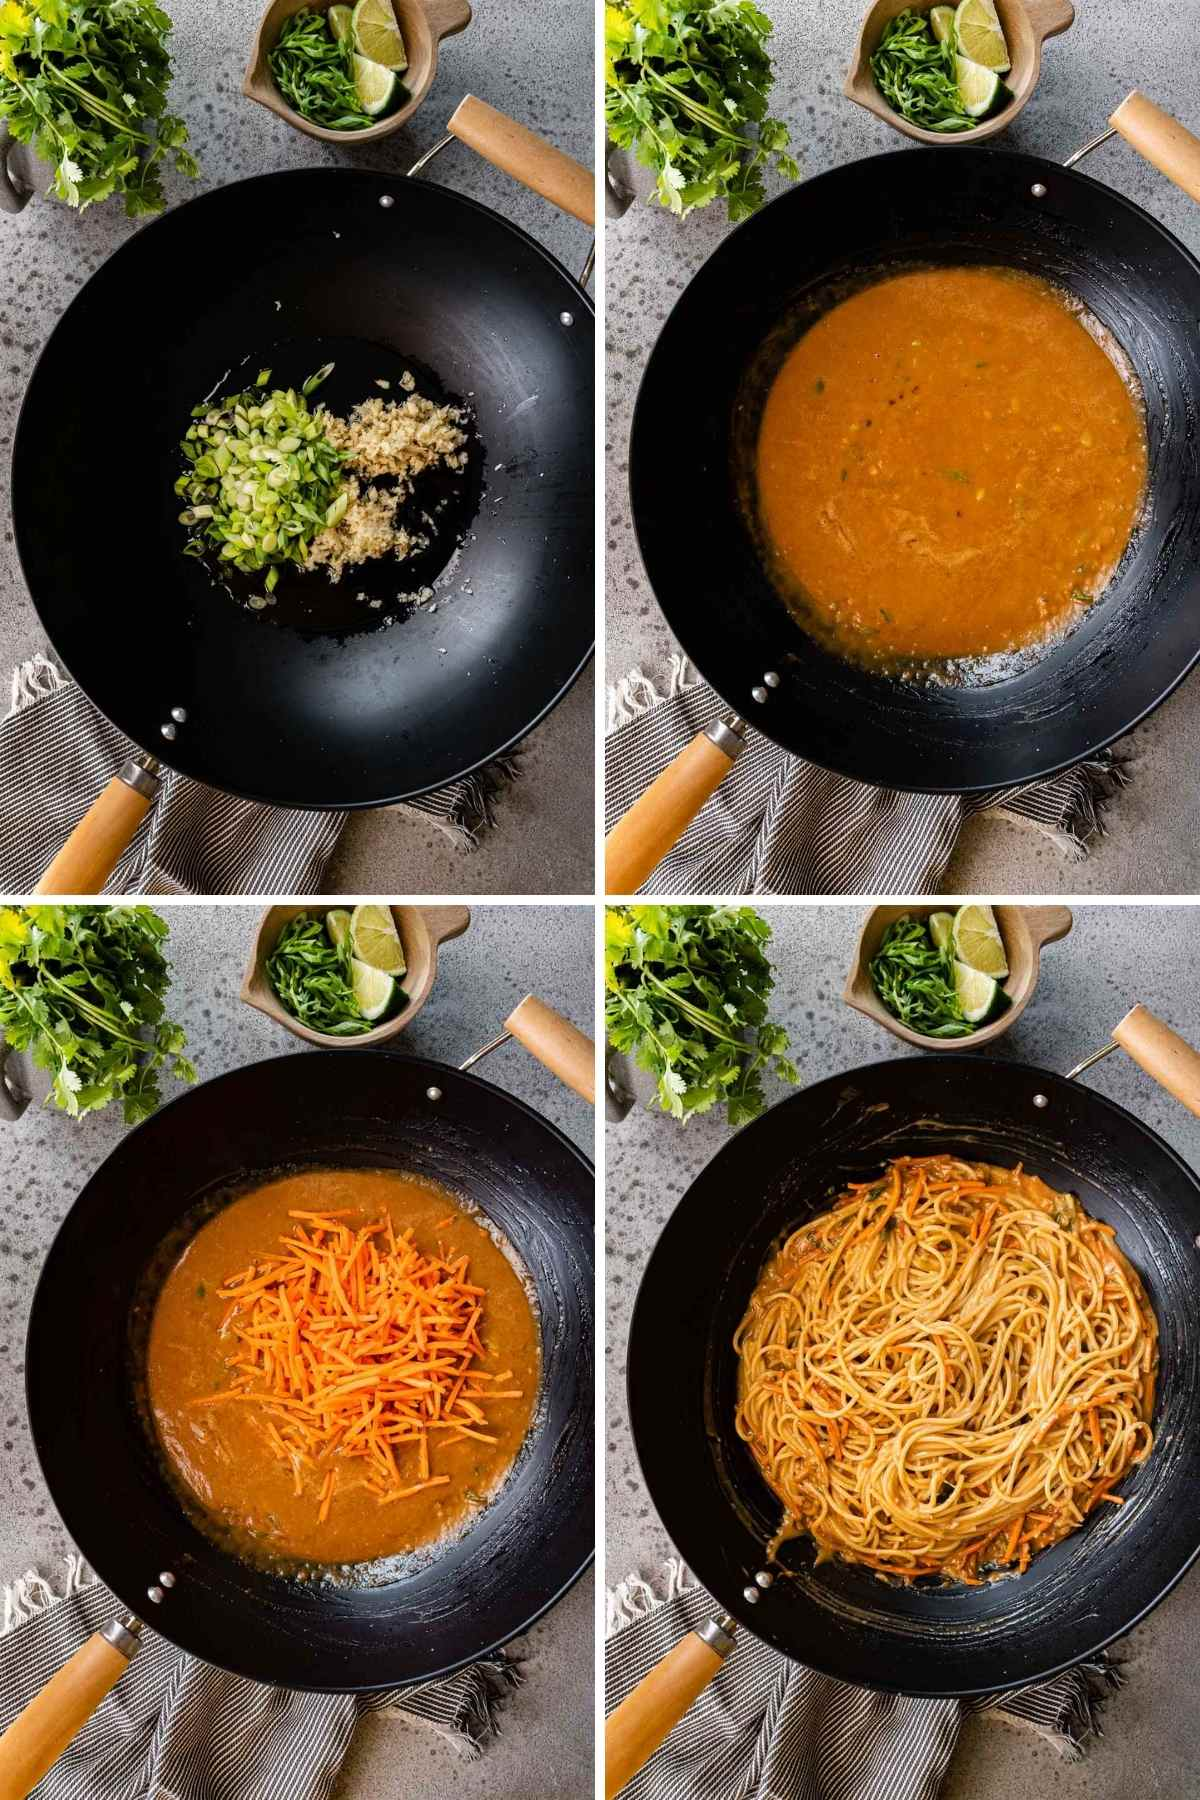 Collage of cooking steps for Spicy Peanut Noodles